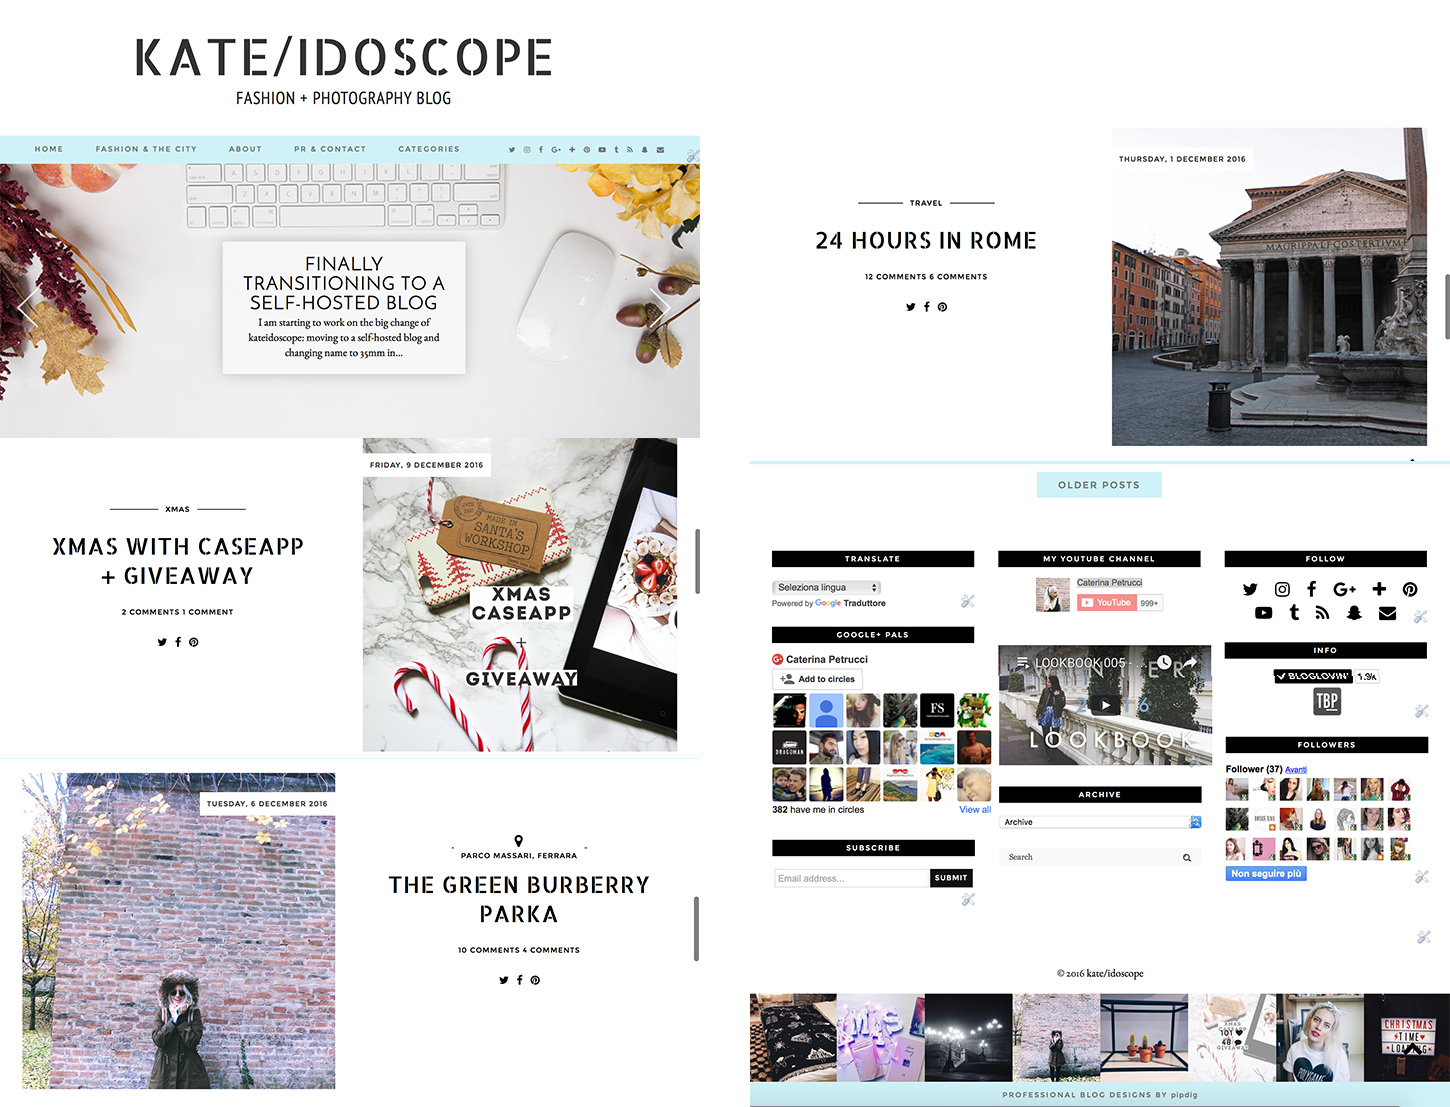 hello 35mm in style, goodbye kateidoscope: my transition from Blogger to WordPress